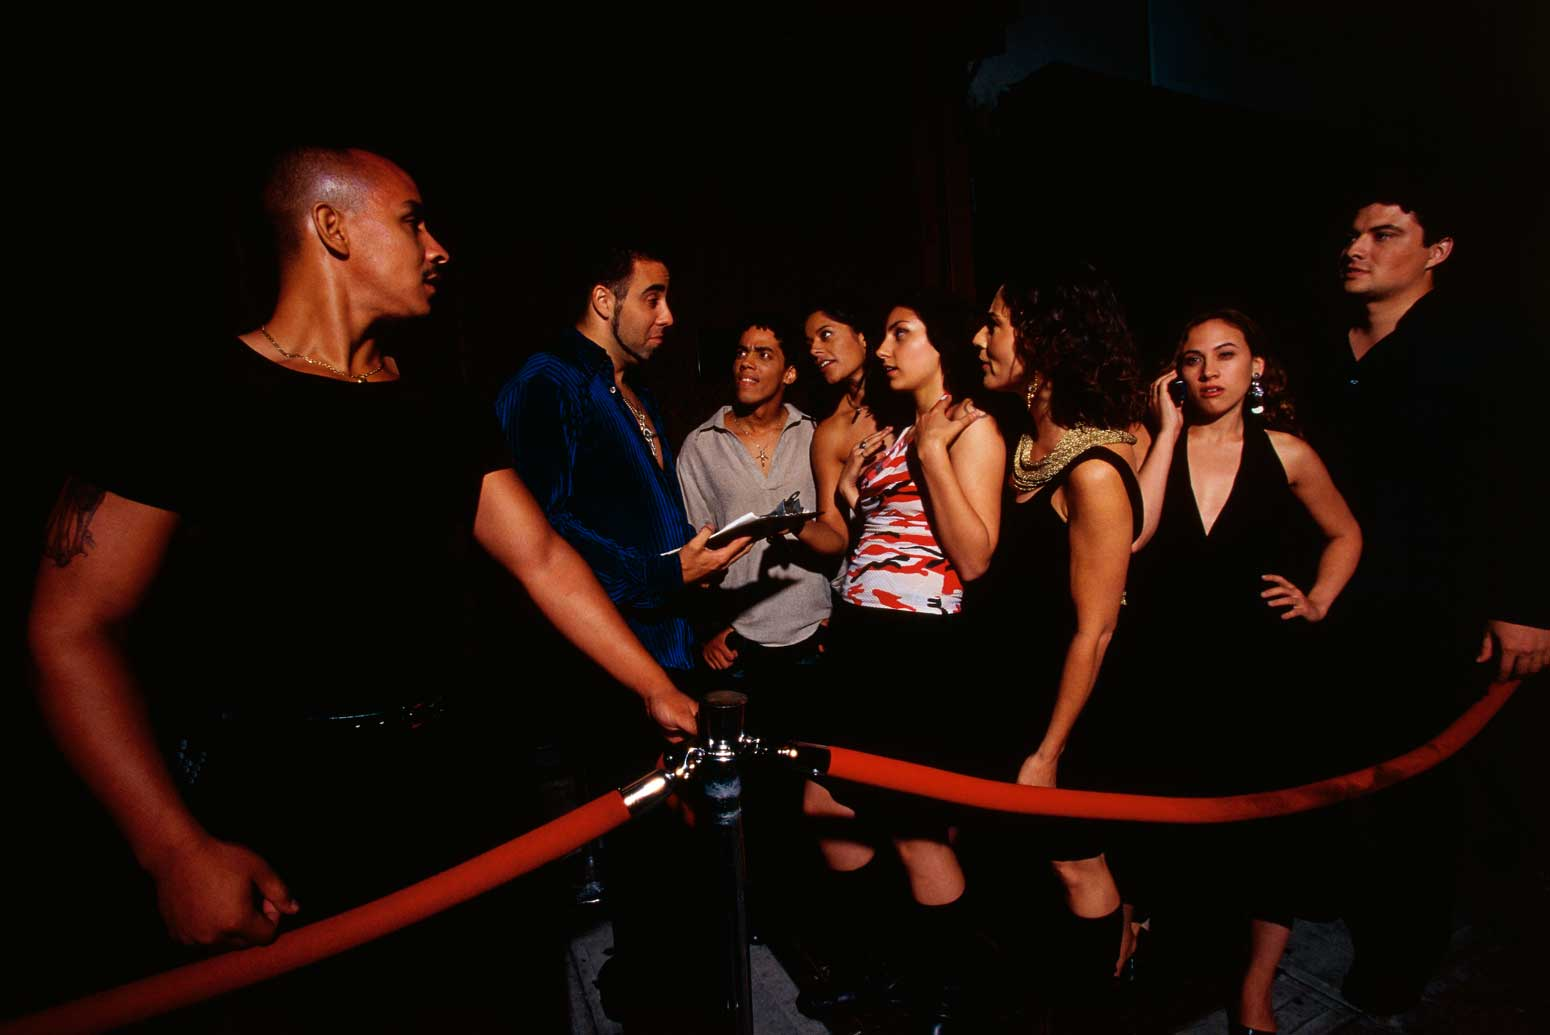 Sorry, security information teen parties were not